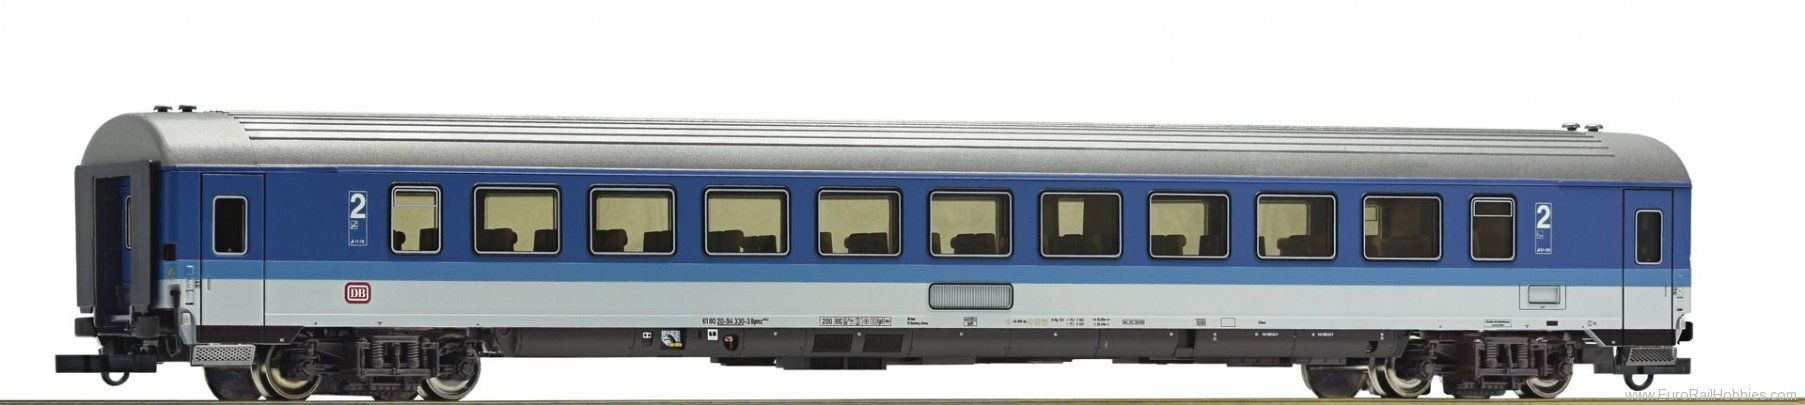 Roco 64927 2nd class express train wagon, DB